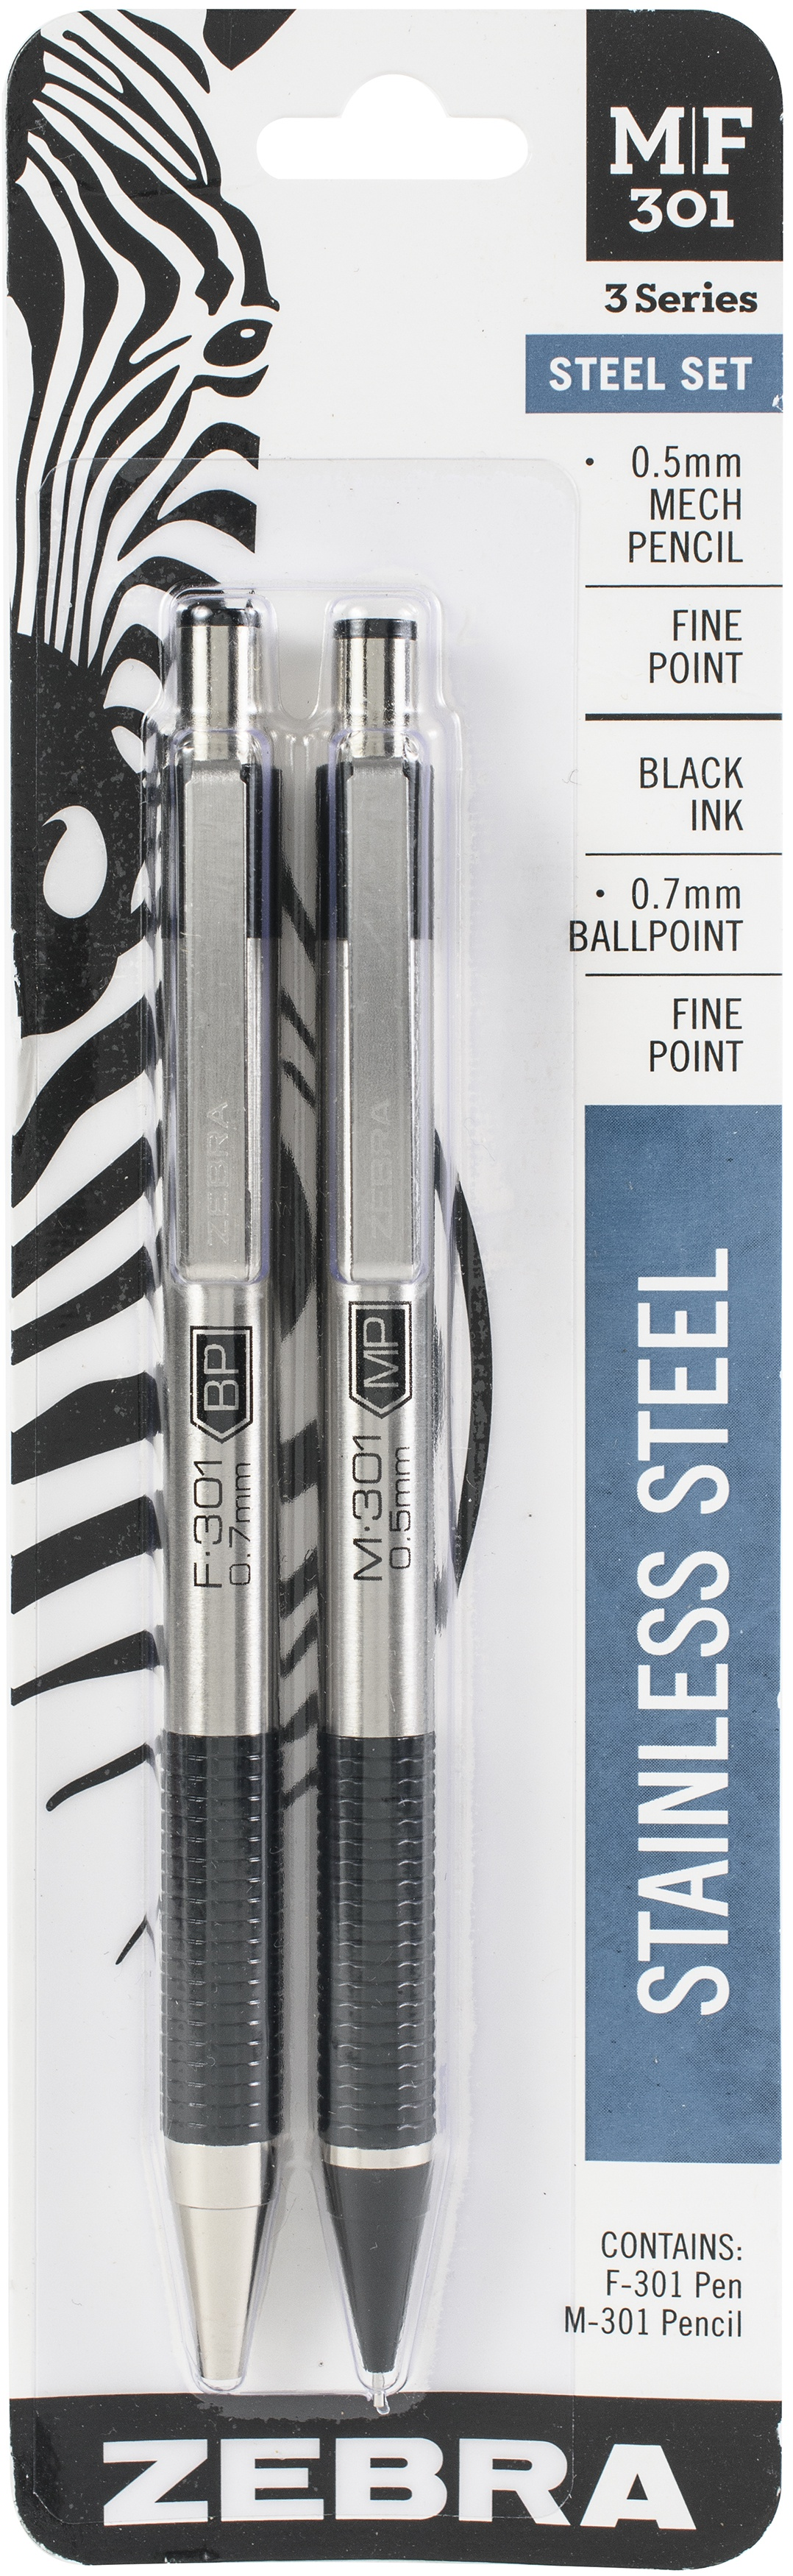 Zebra M/F 301 Stainless Steel Pen & Pencil Set 2/Pkg-Pen 0.7mm & Mechanical Pencil 0.5mm